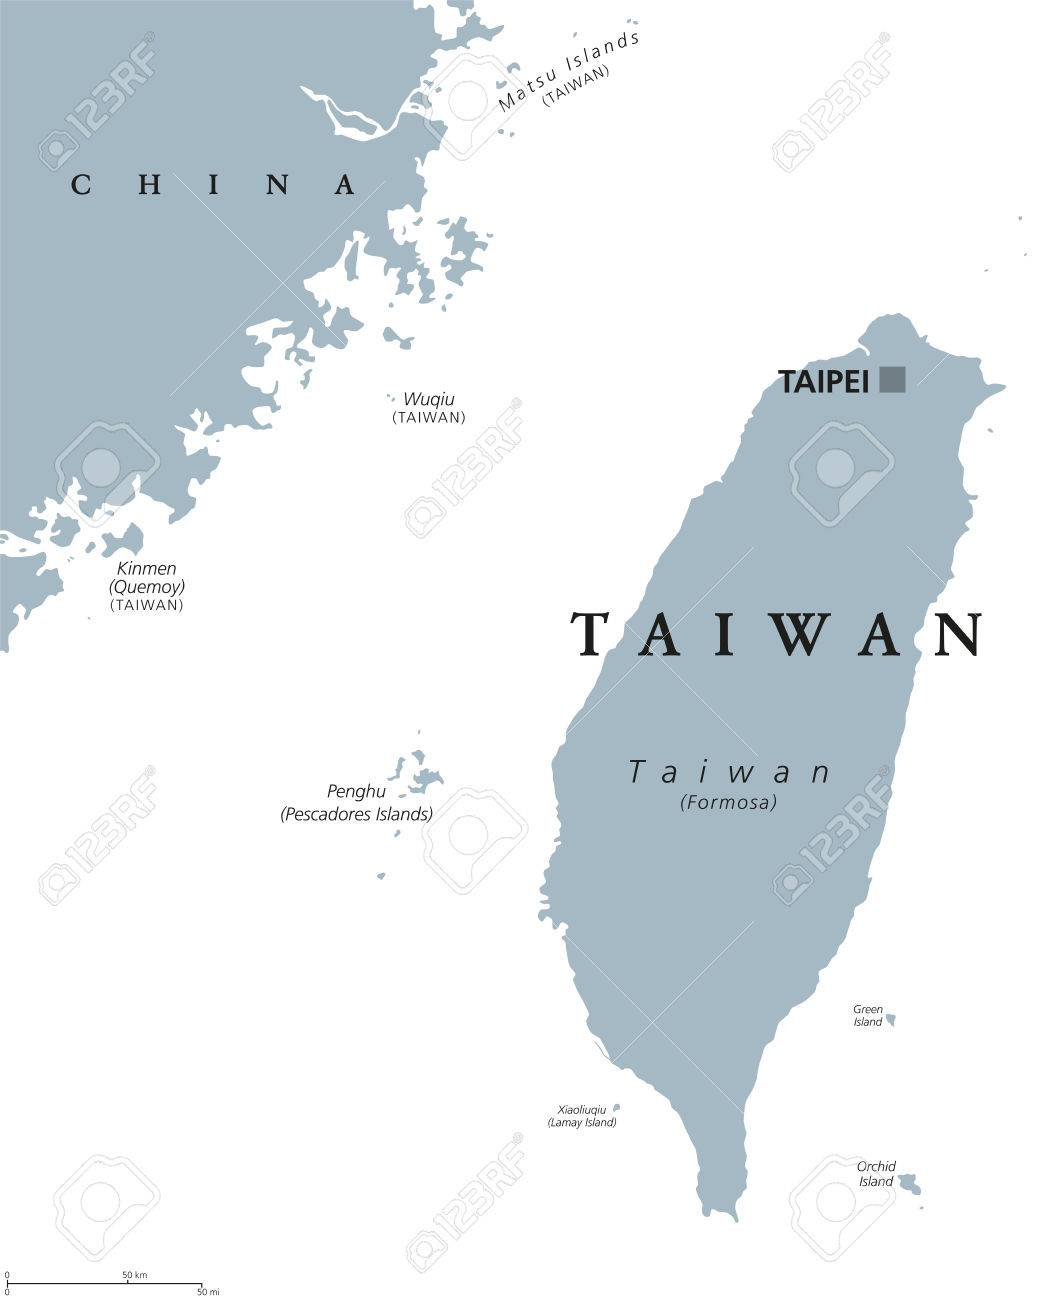 China Map In English.Taiwan Political Map With Capital Taipei English Labeling